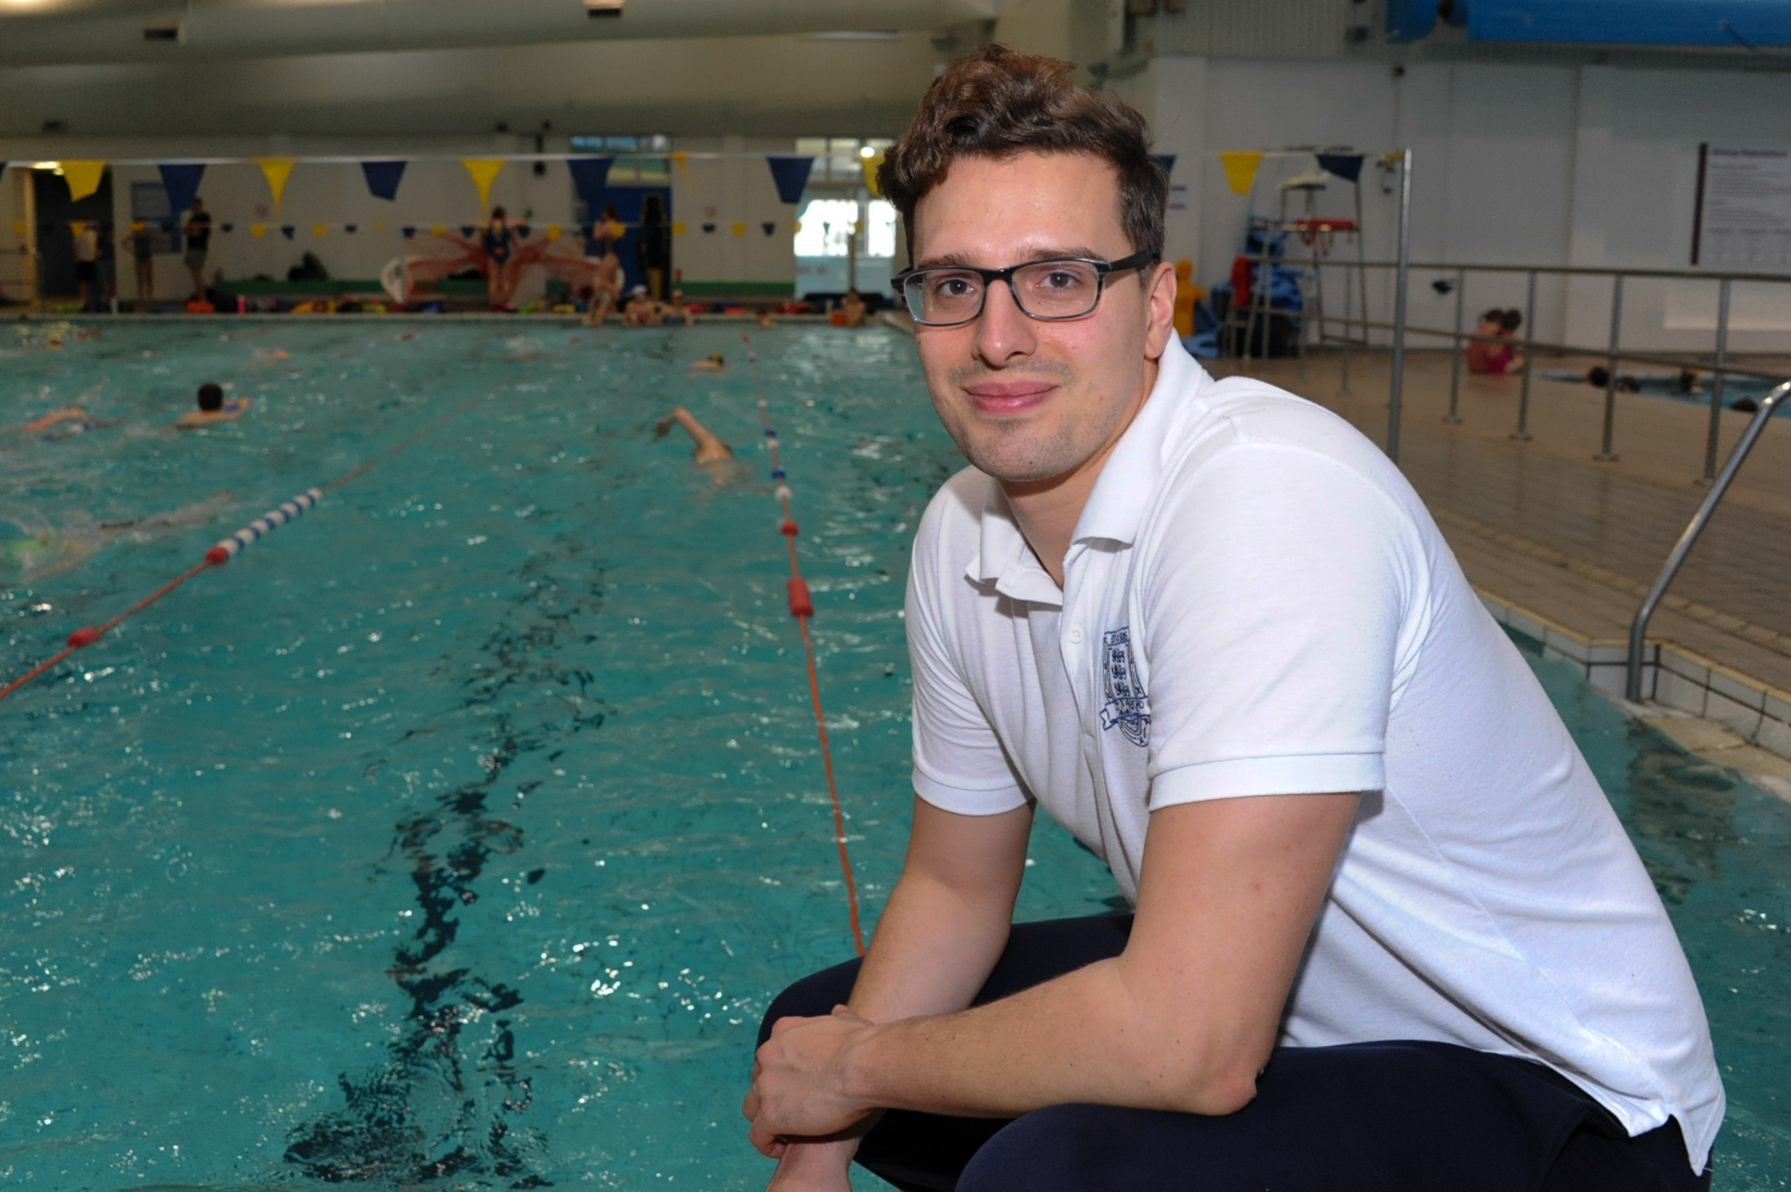 City of Hereford Swimming Club head coach John Sargent